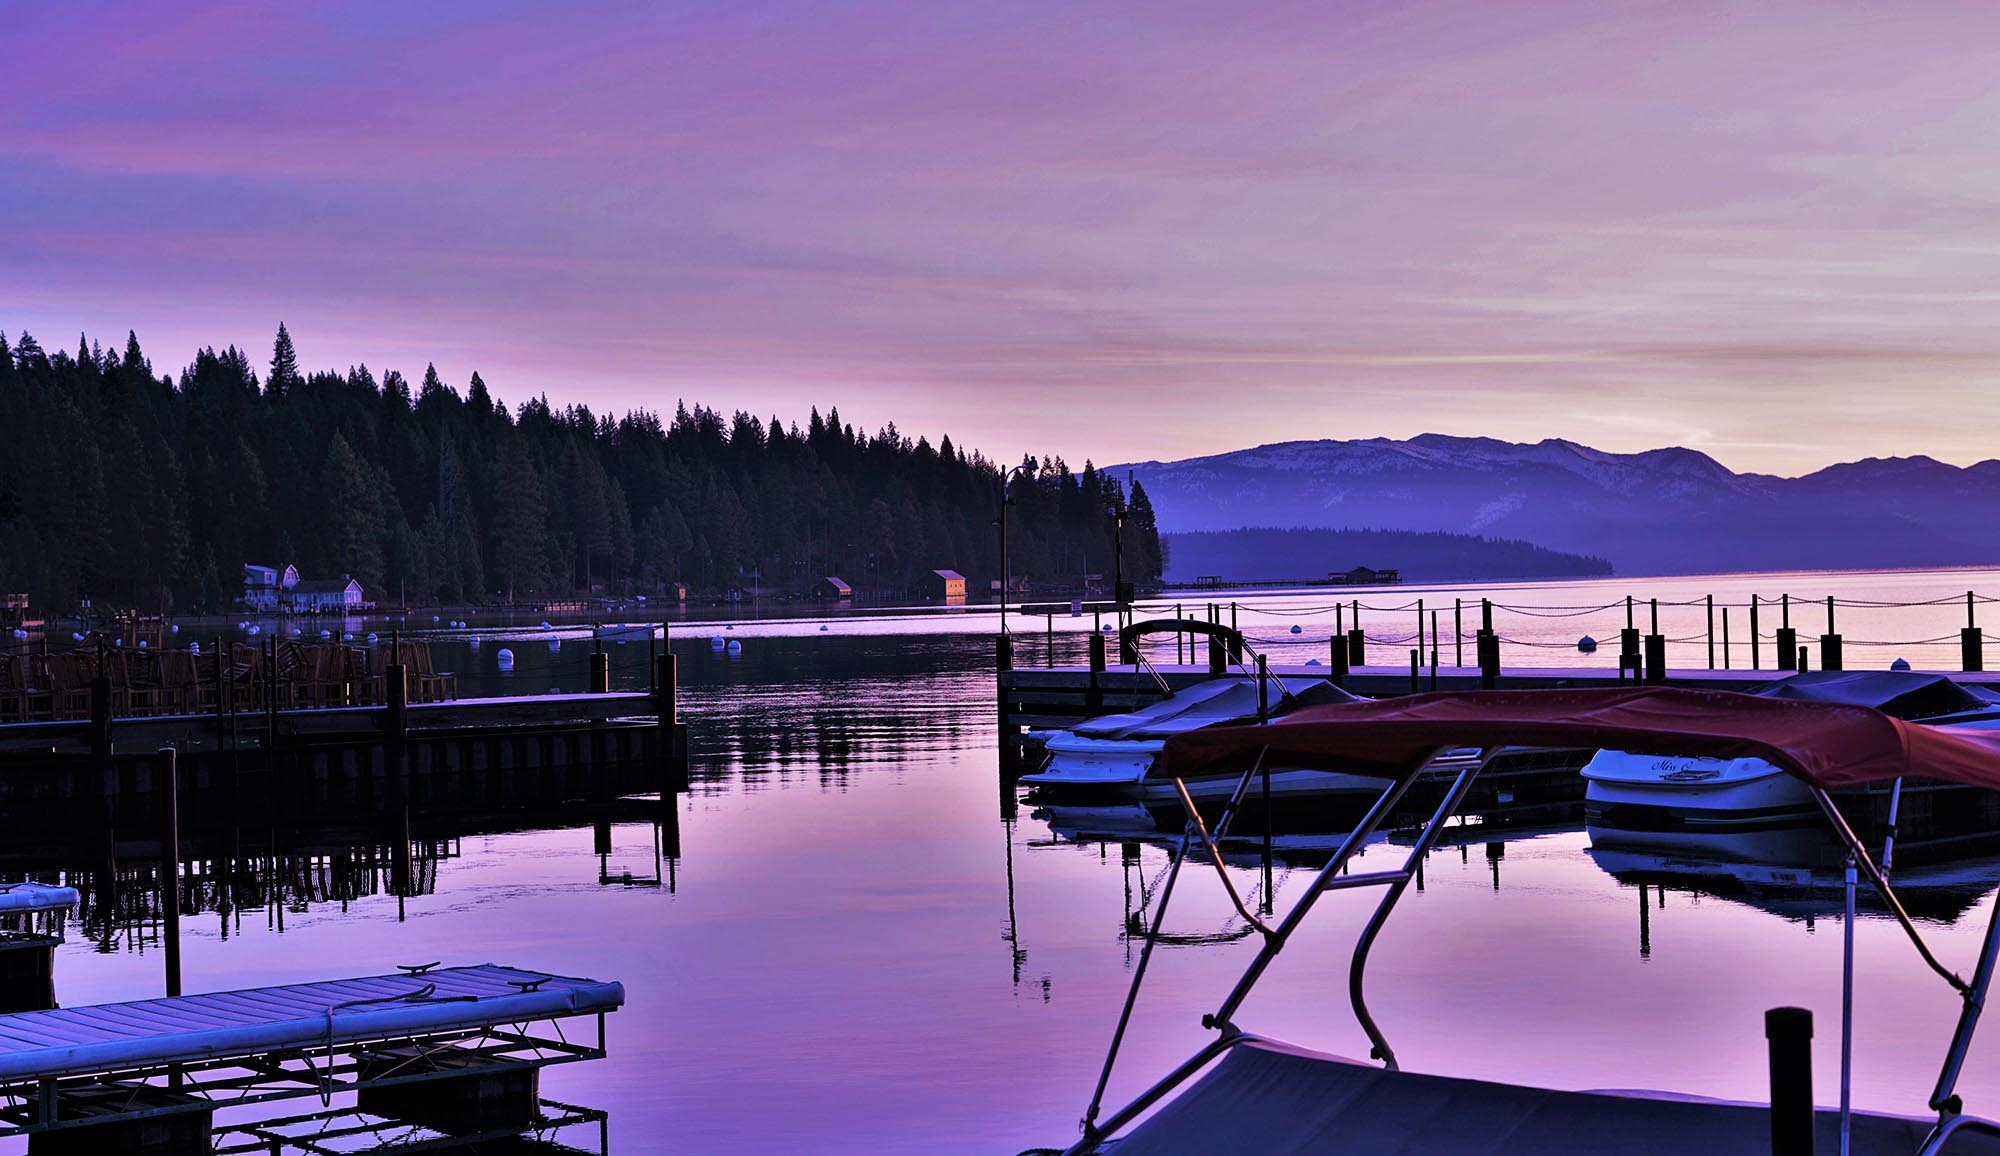 Pros and Cons of Purchasing a Home by the Waterfront